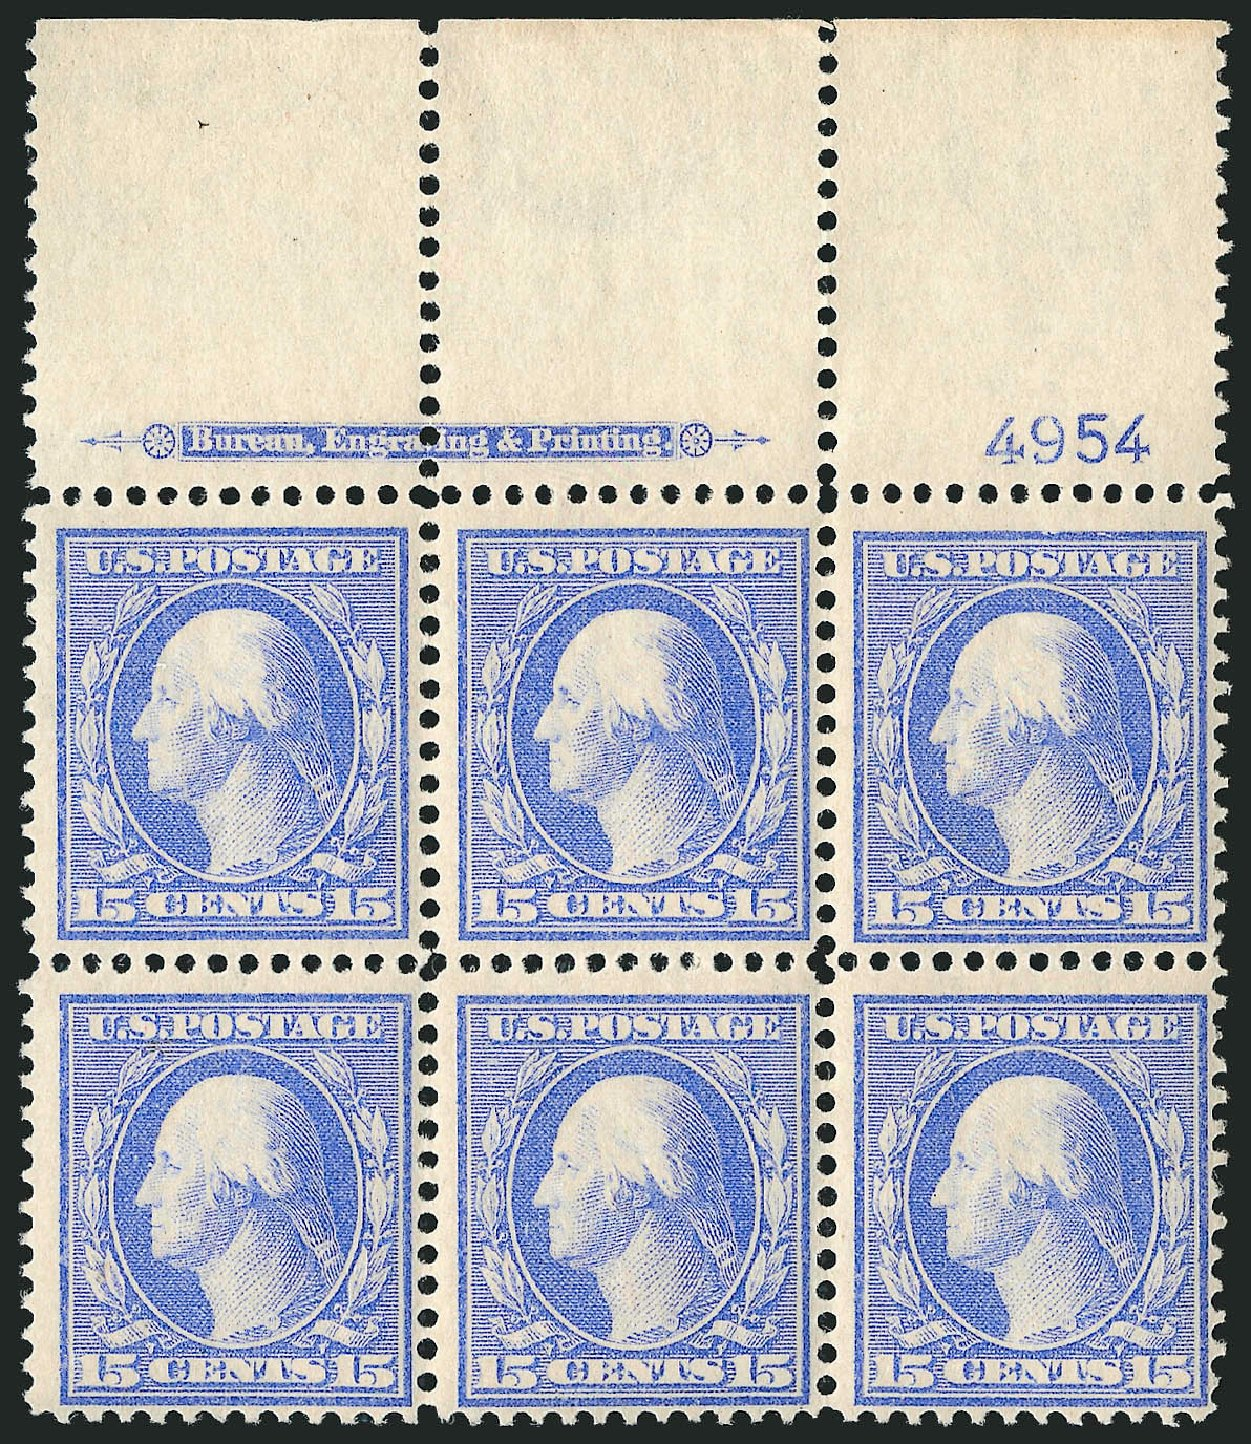 Cost of US Stamp Scott Catalogue 340 - 1909 15c Washington. Robert Siegel Auction Galleries, Apr 2015, Sale 1096, Lot 572